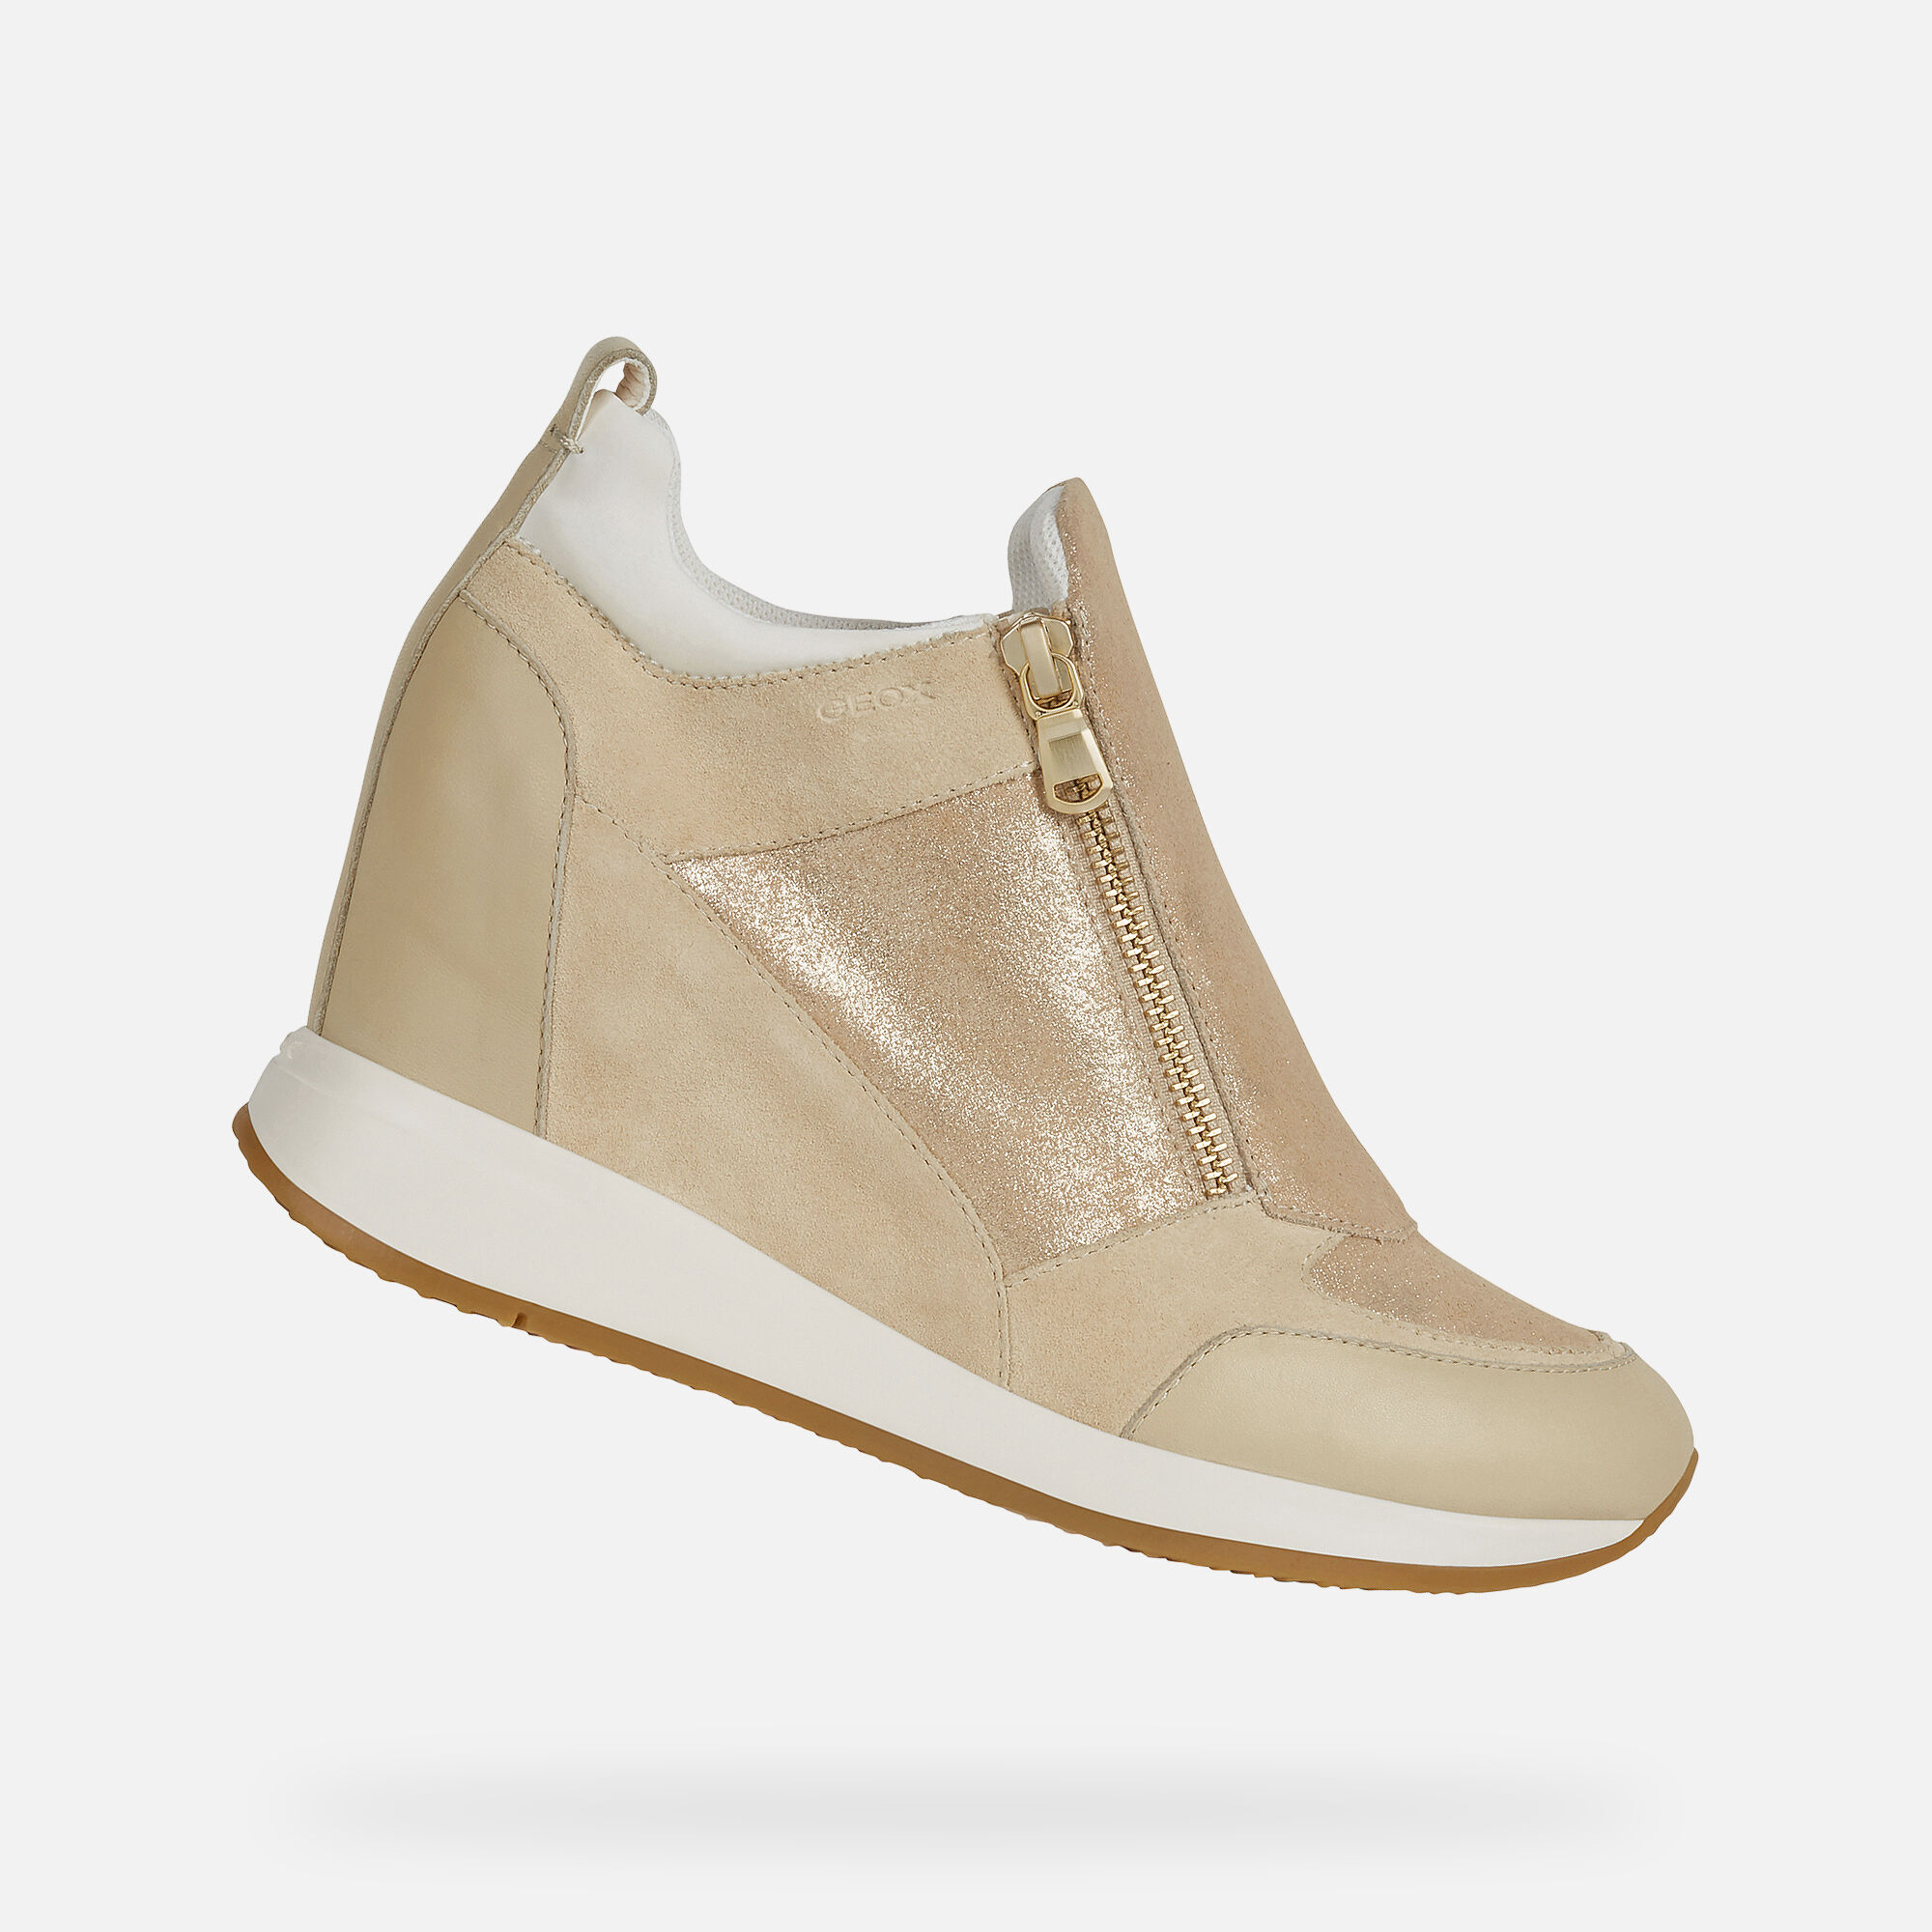 Geox NYDAME Woman: Sand Sneakers | Geox